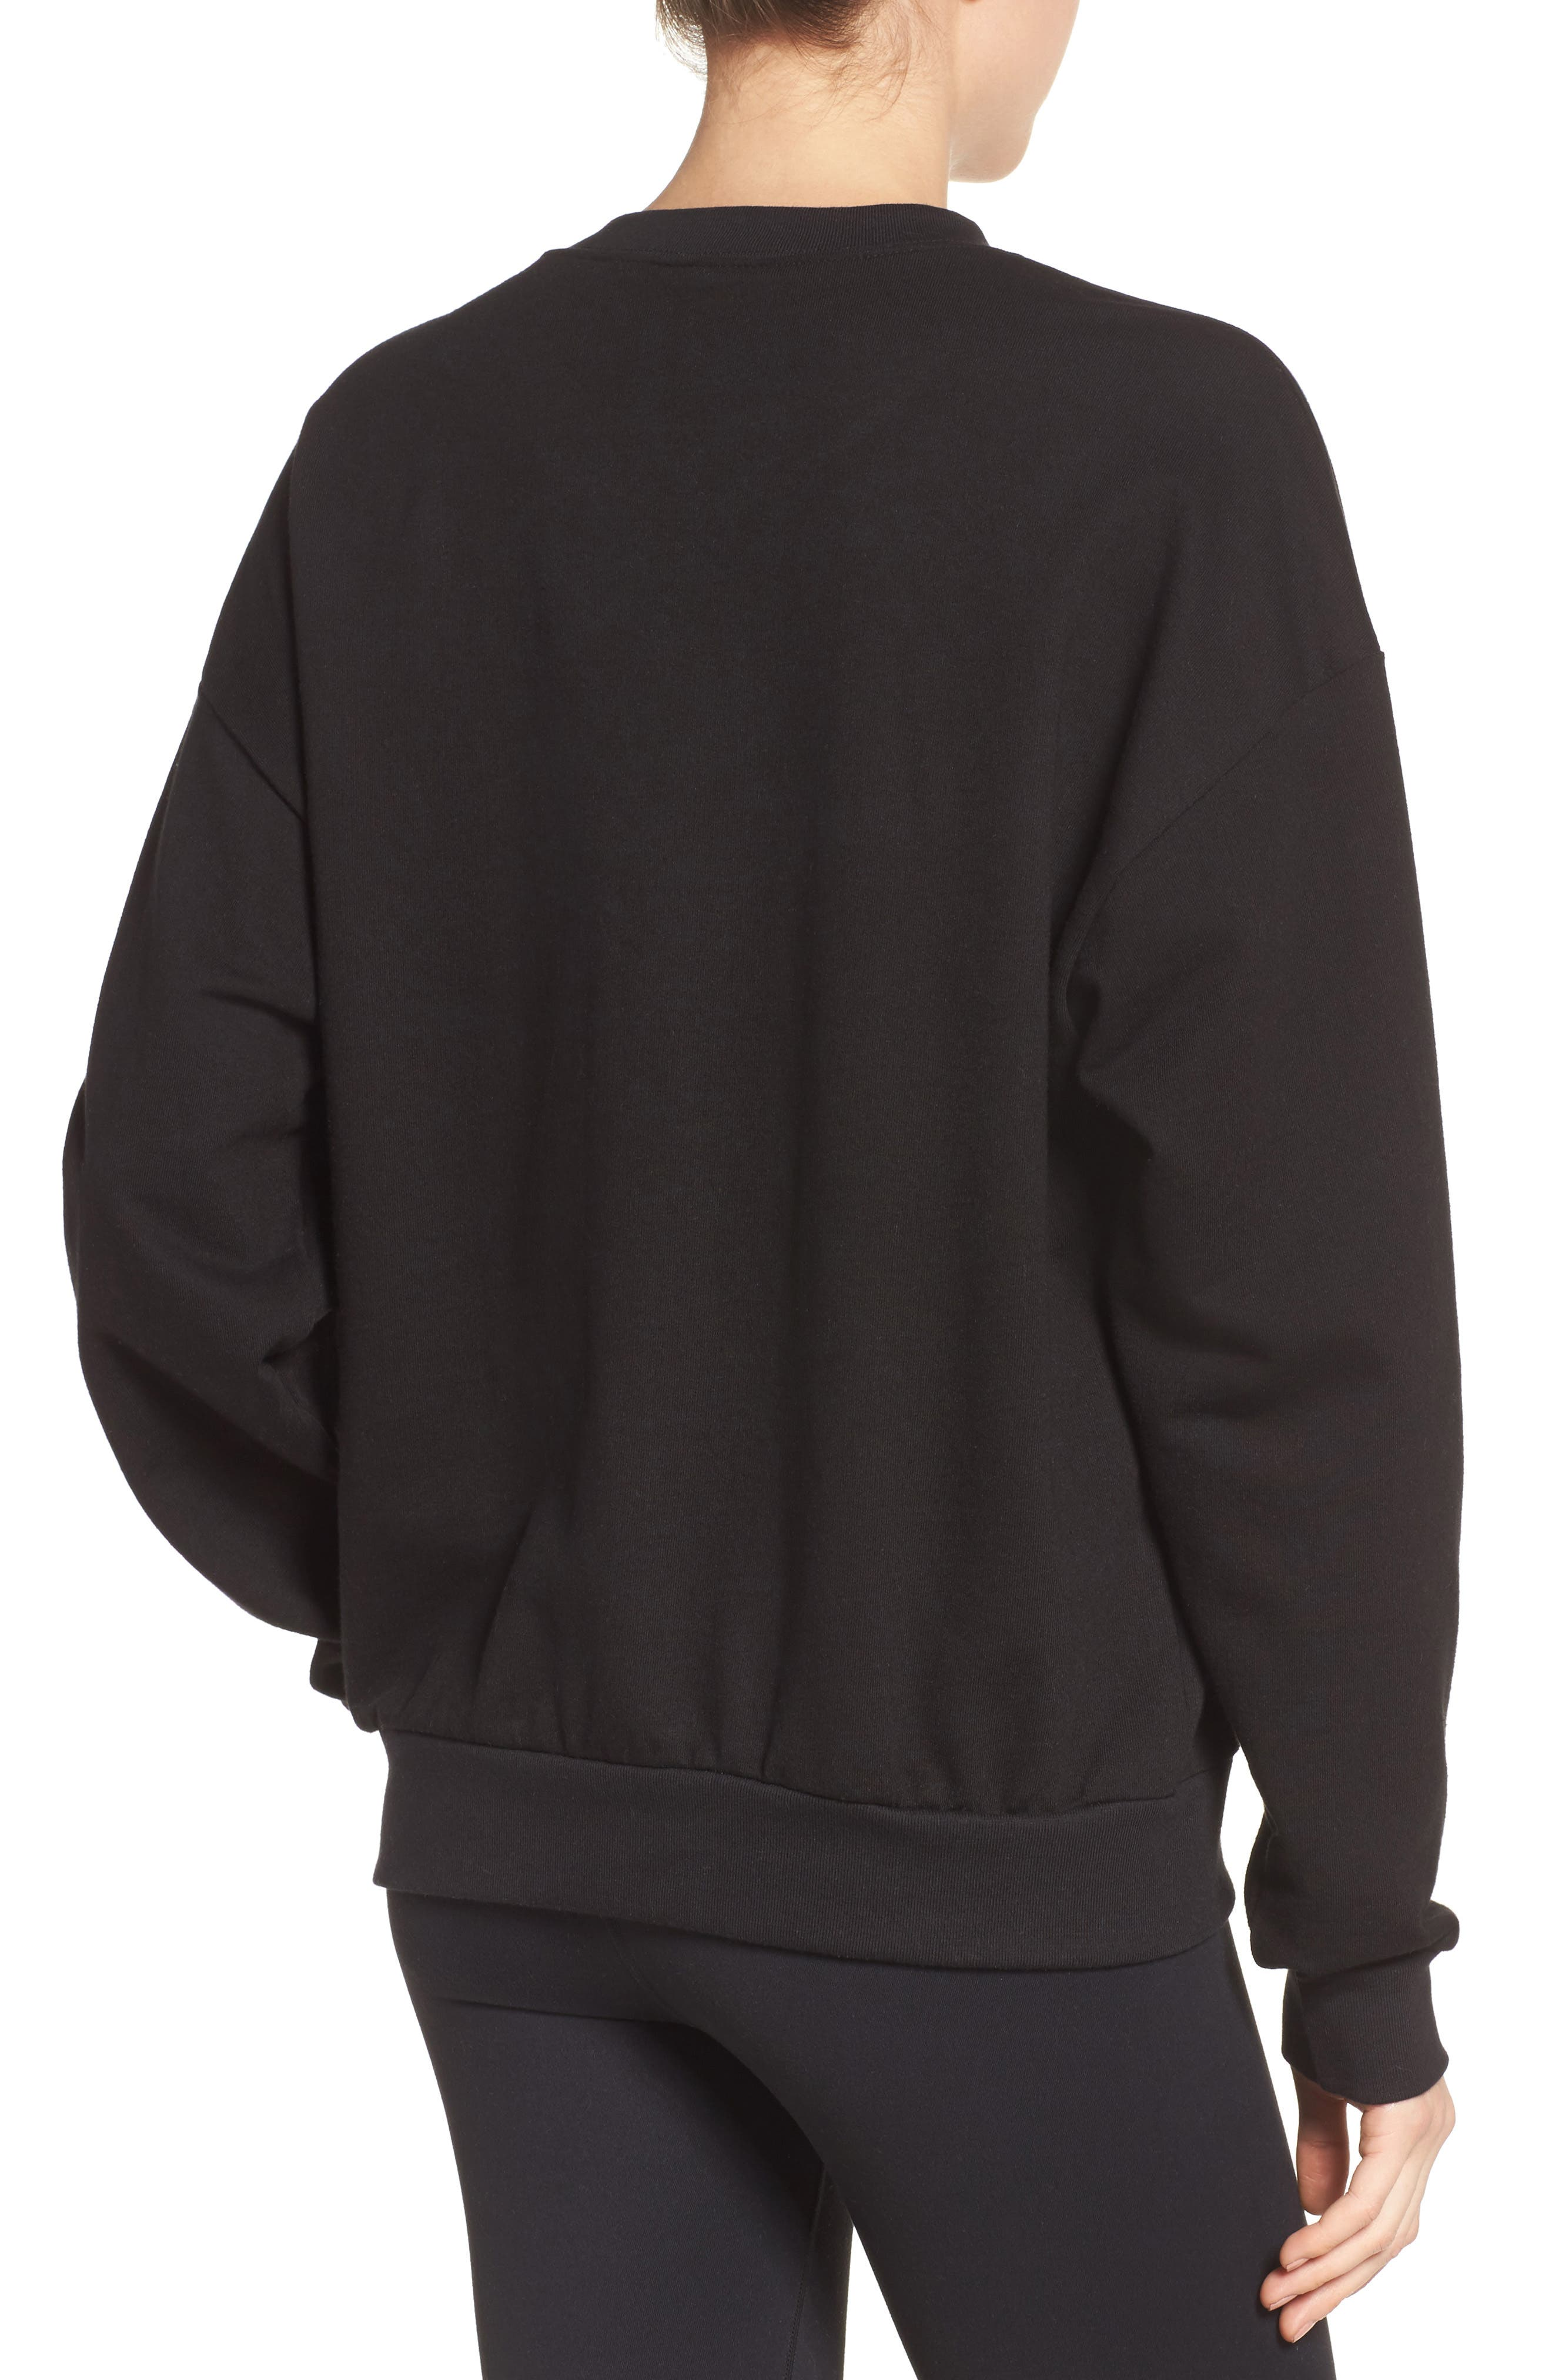 Yoga & Chill Sweatshirt,                             Alternate thumbnail 2, color,                             Black